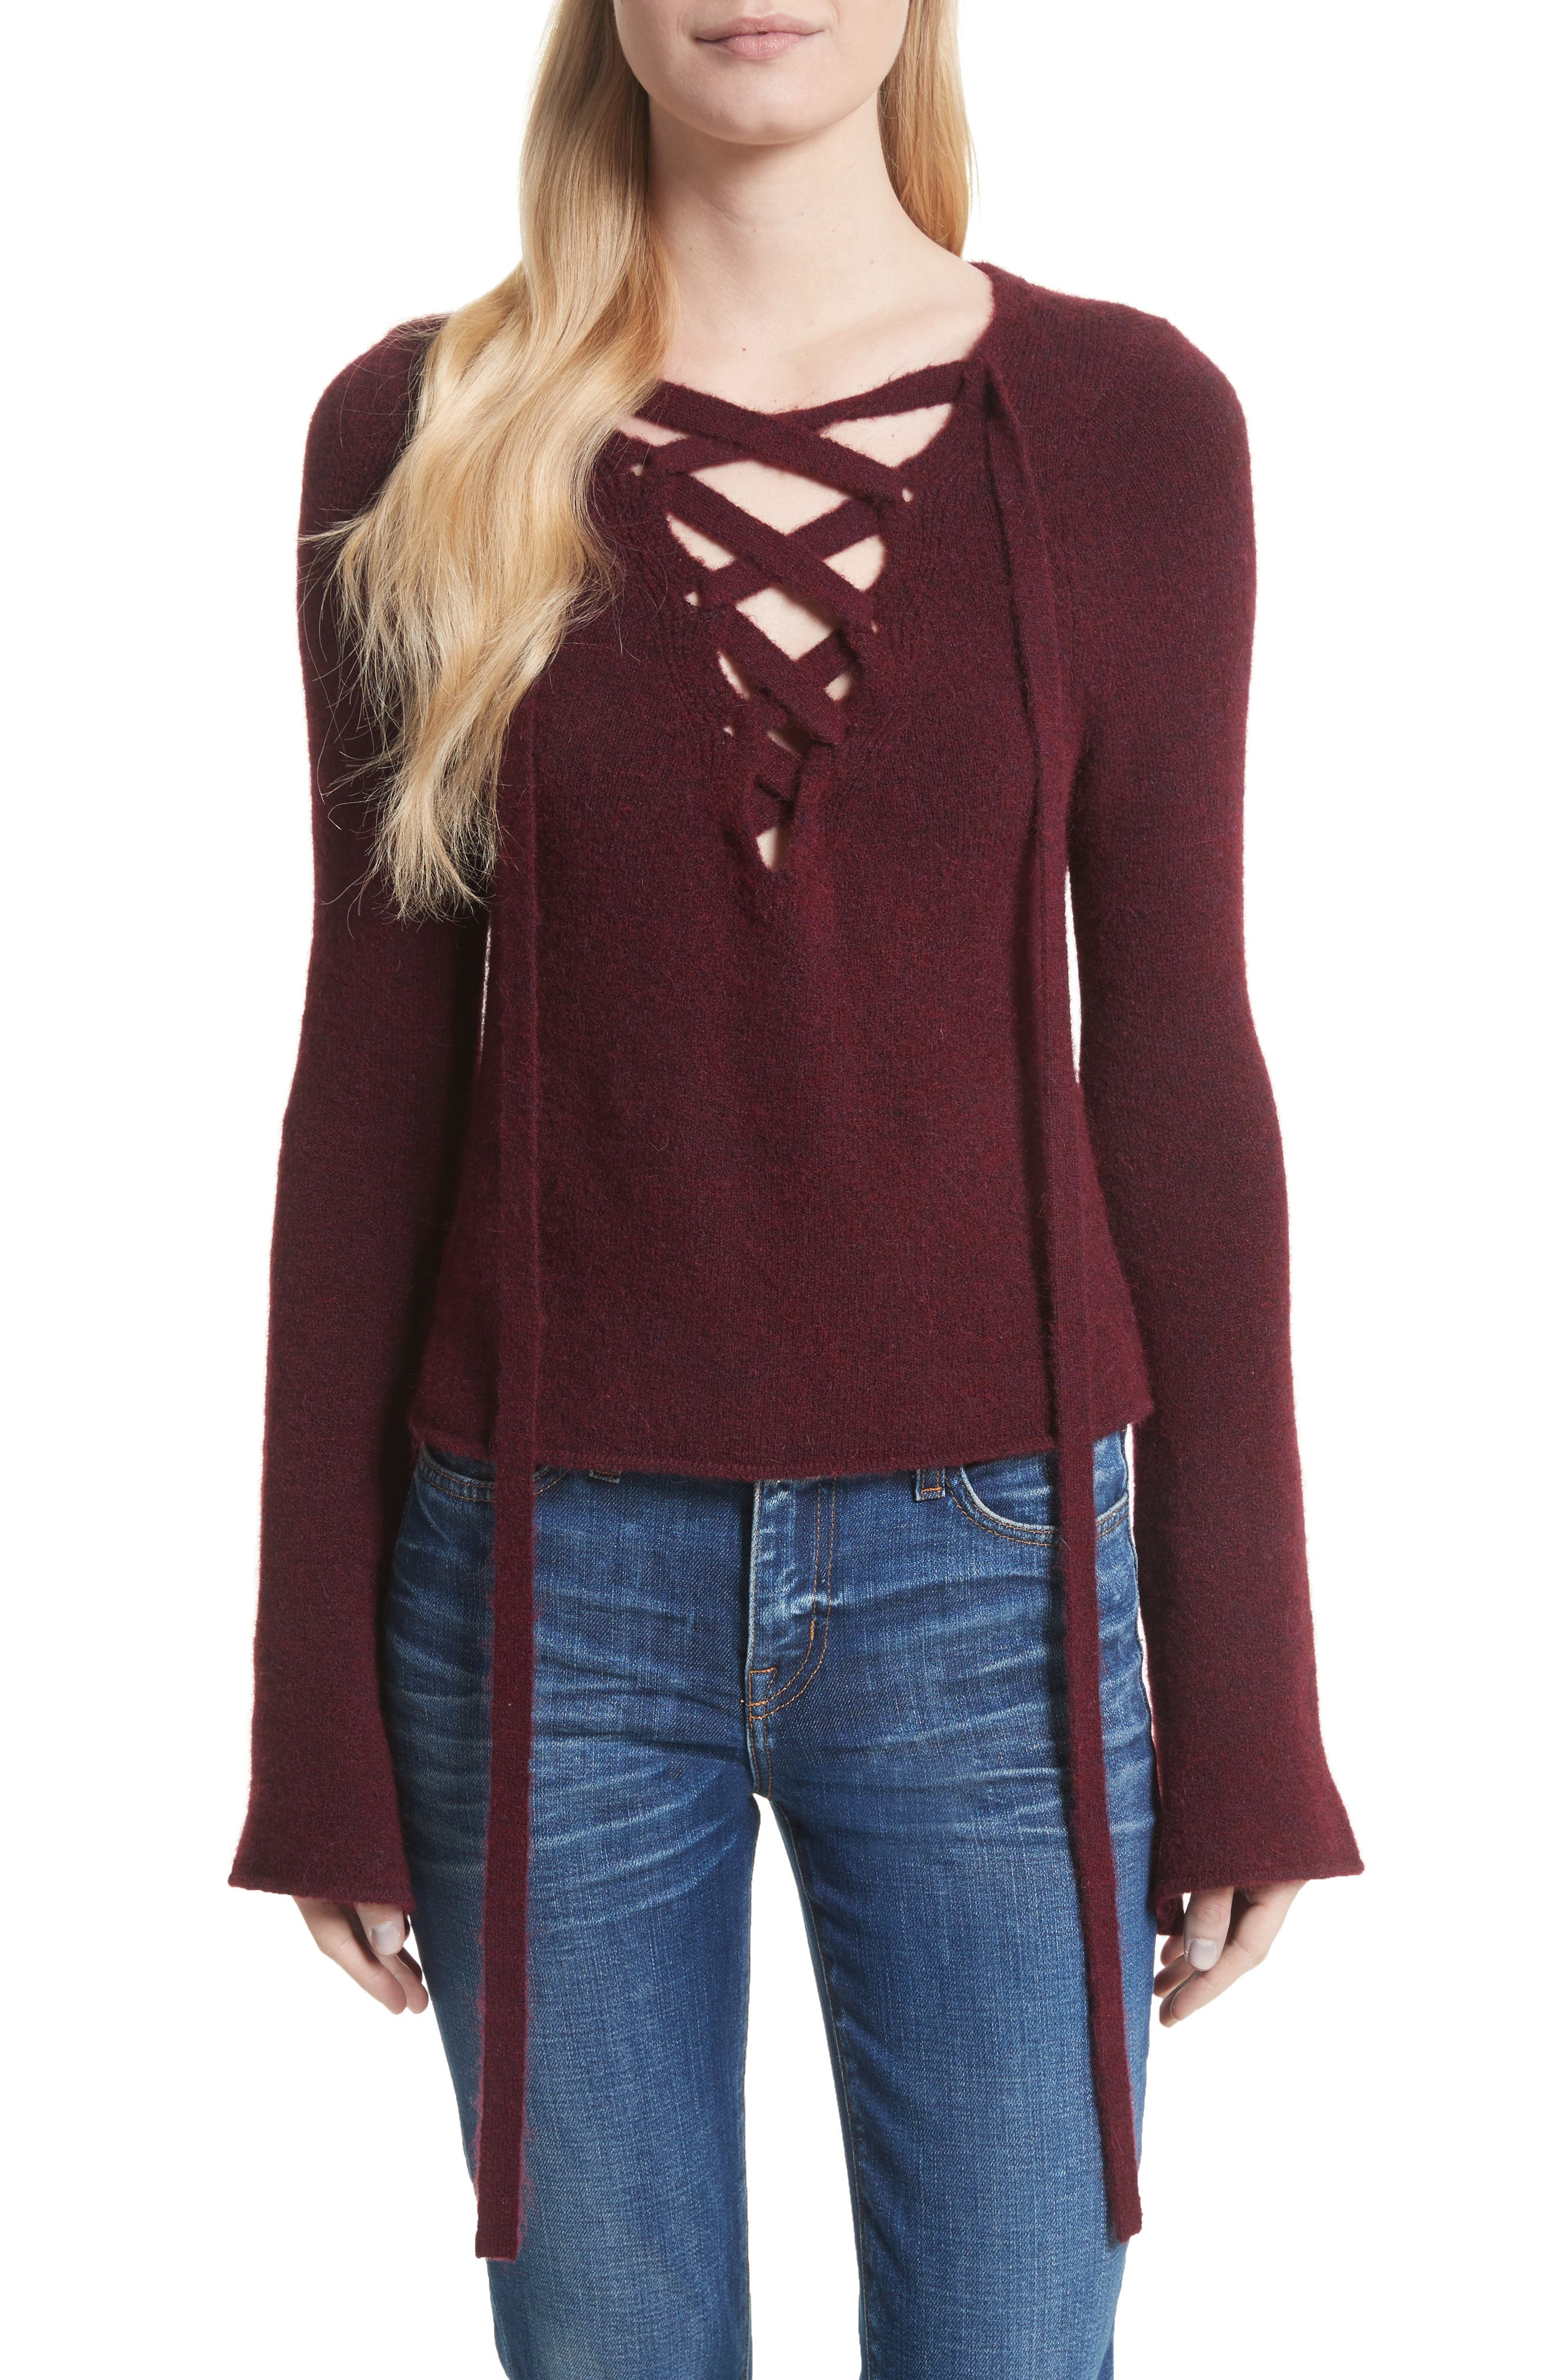 Candela Lace-Up Sweater,                         Main,                         color, Rhubarb